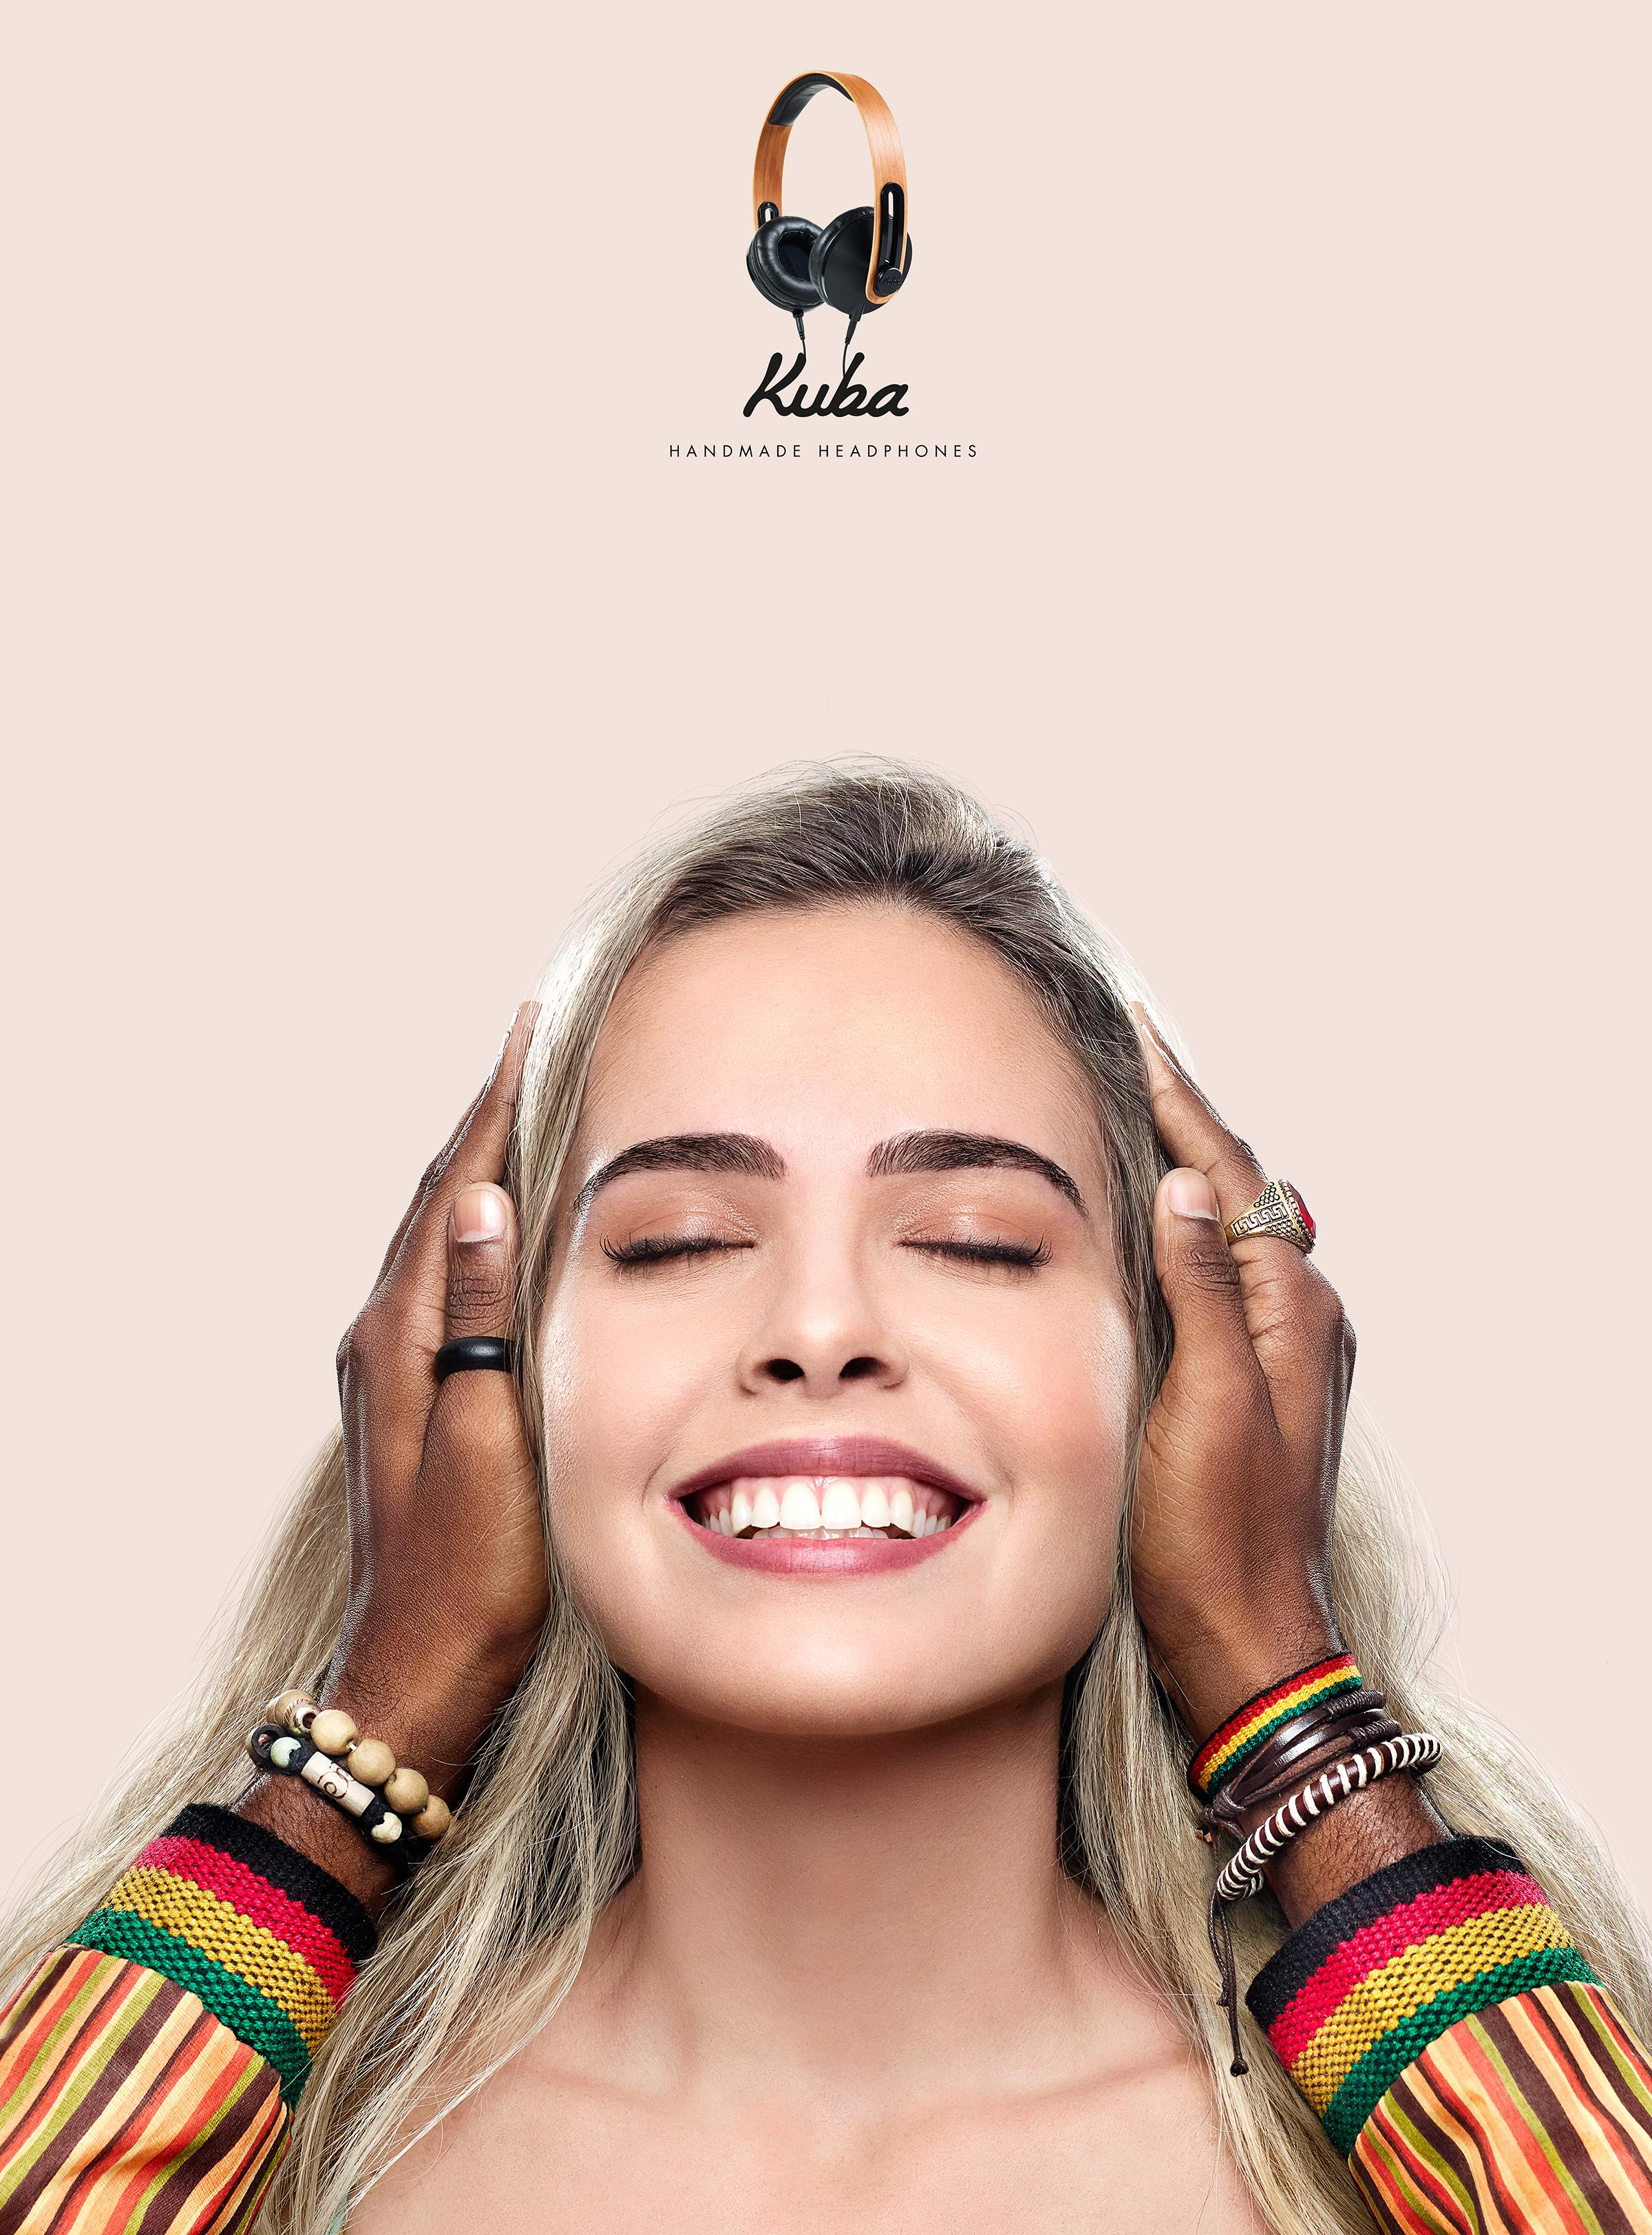 Kuba Audio Print Ad - Reggae Hands